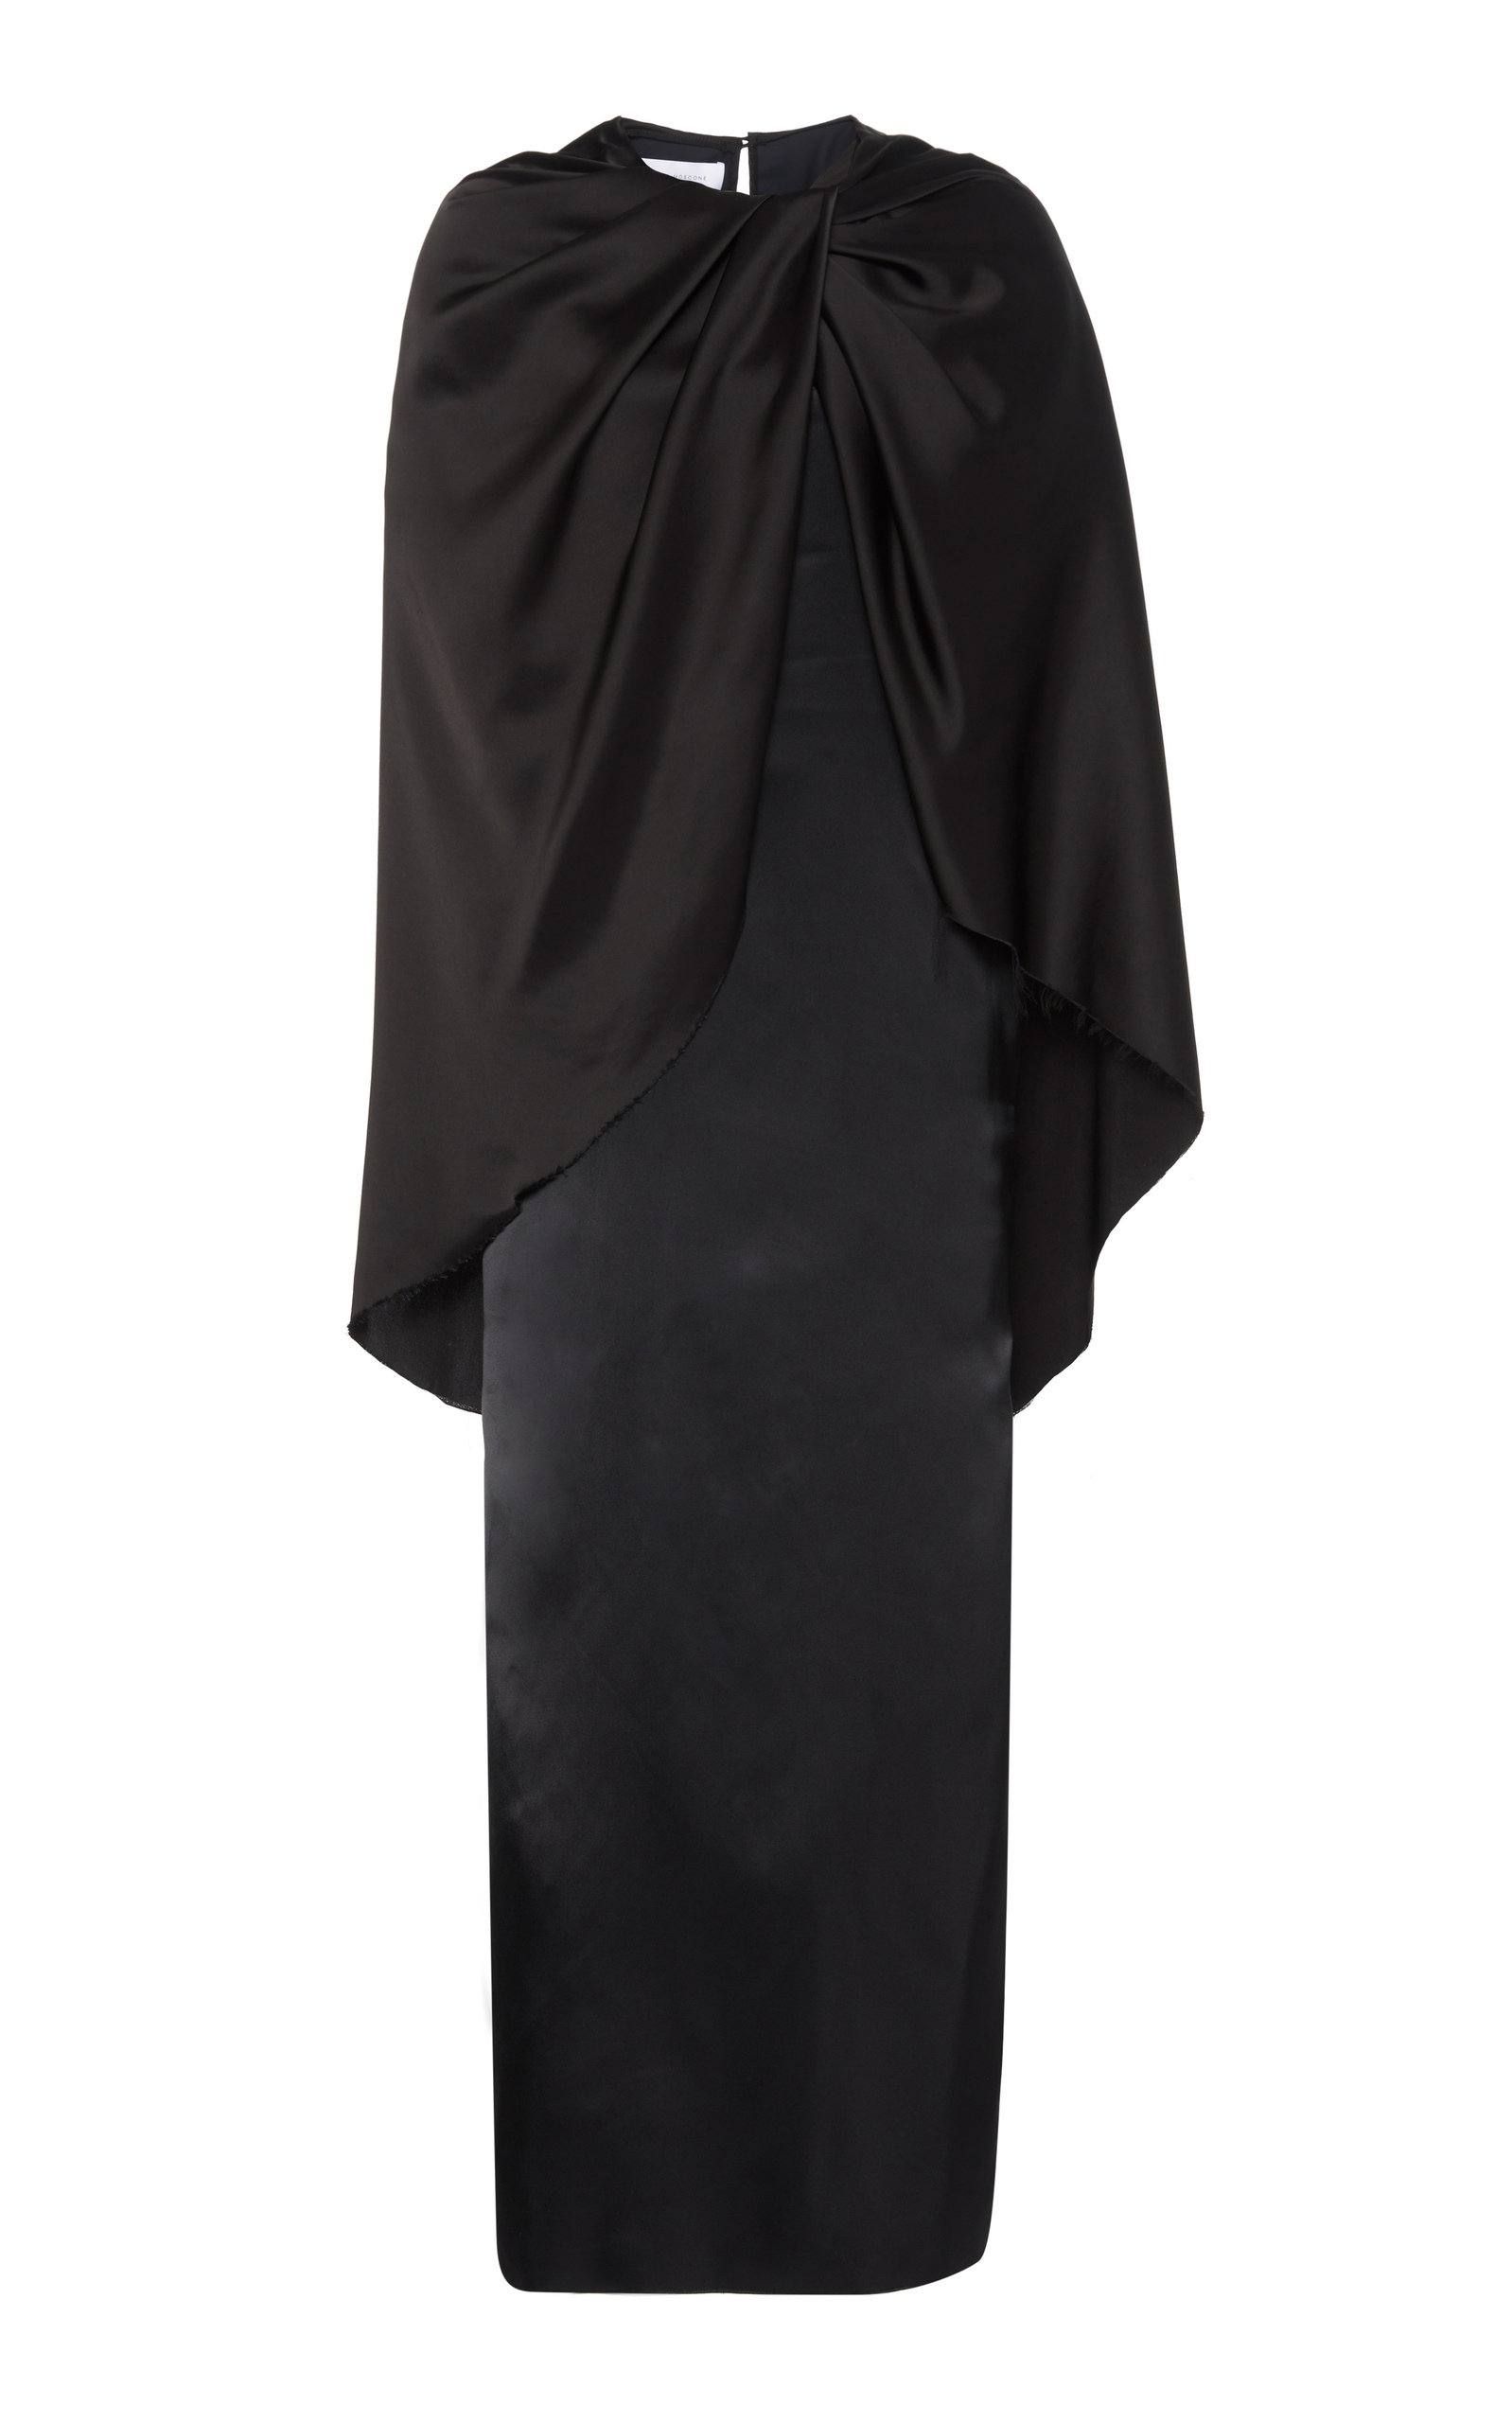 Buy Marina Moscone Draped Cape-Effect Satin Dress online, shop Marina Moscone at the best price